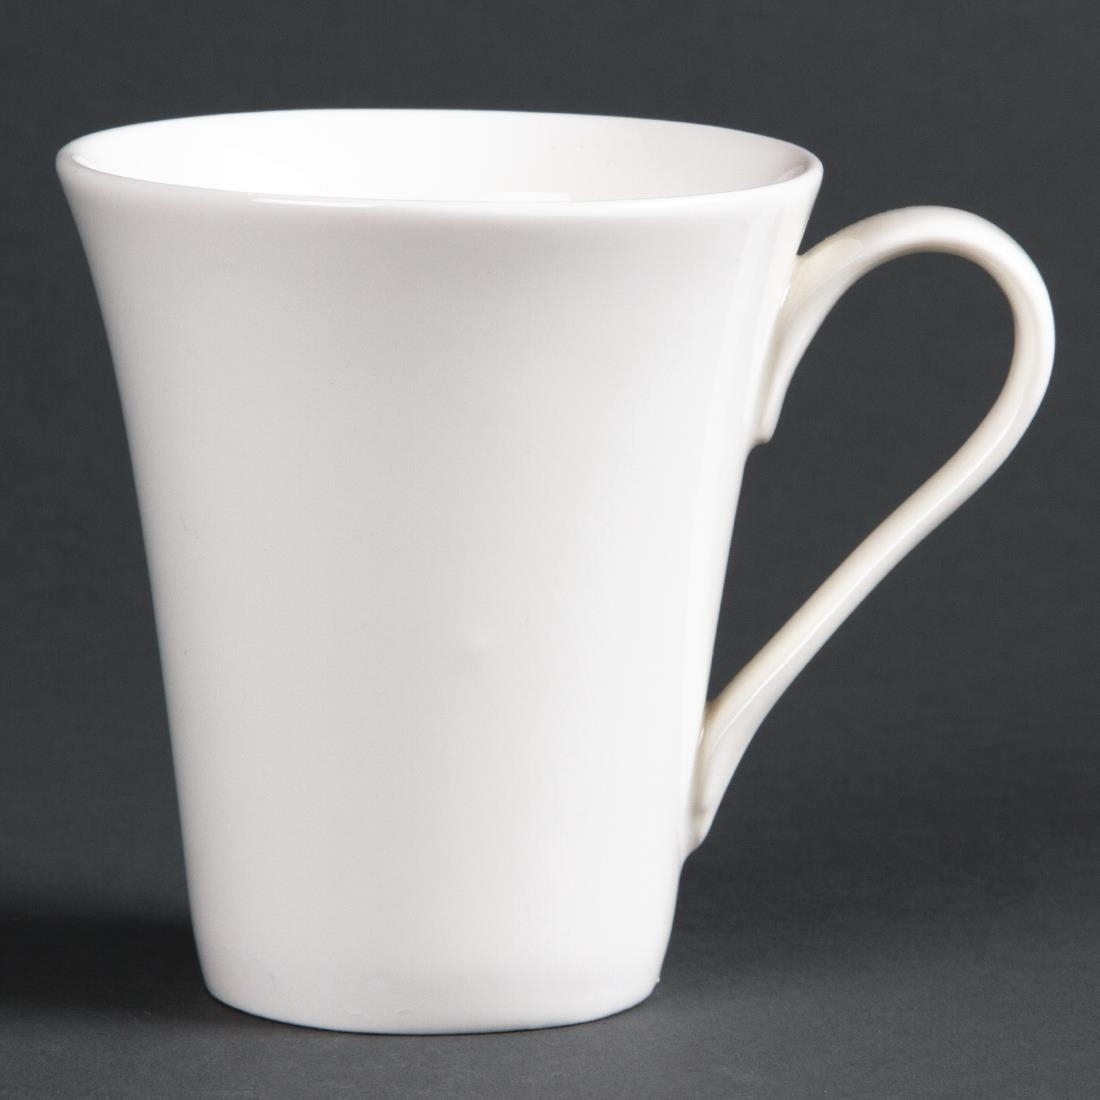 Image of Lumina Fine China Flare Cups 185ml 6oz (Pack of 12) Pack of 12